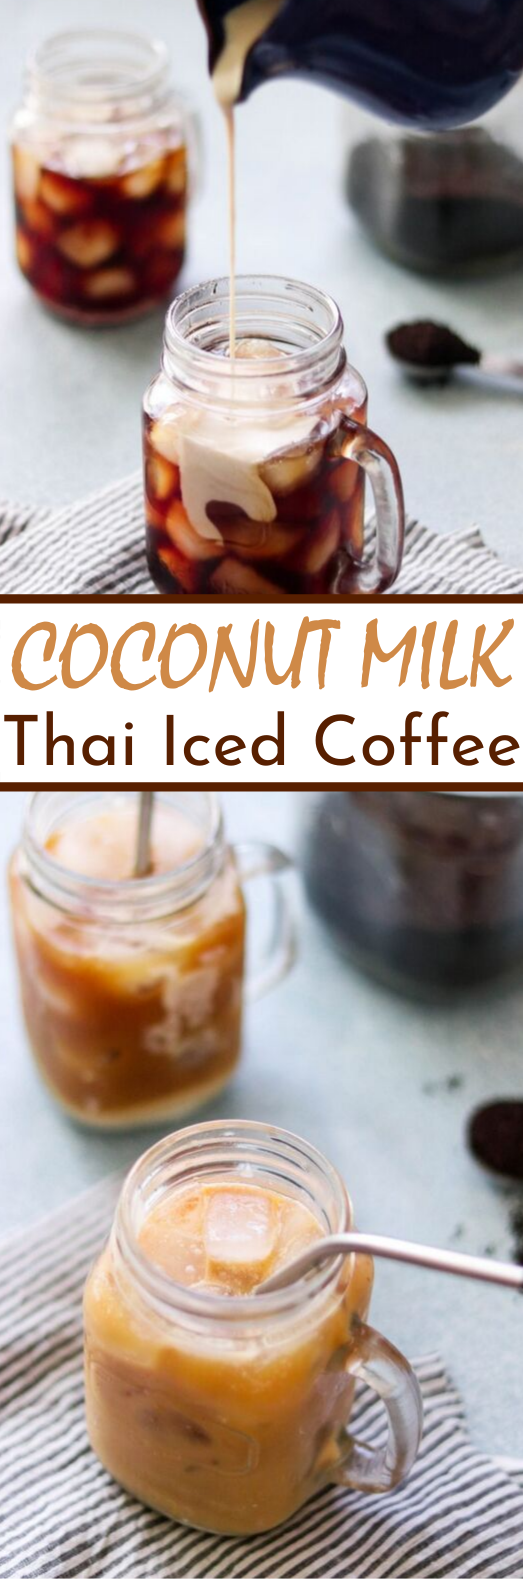 Coconut Milk Thai Iced Coffee #drinks #recipes #coffee #latte #beverages